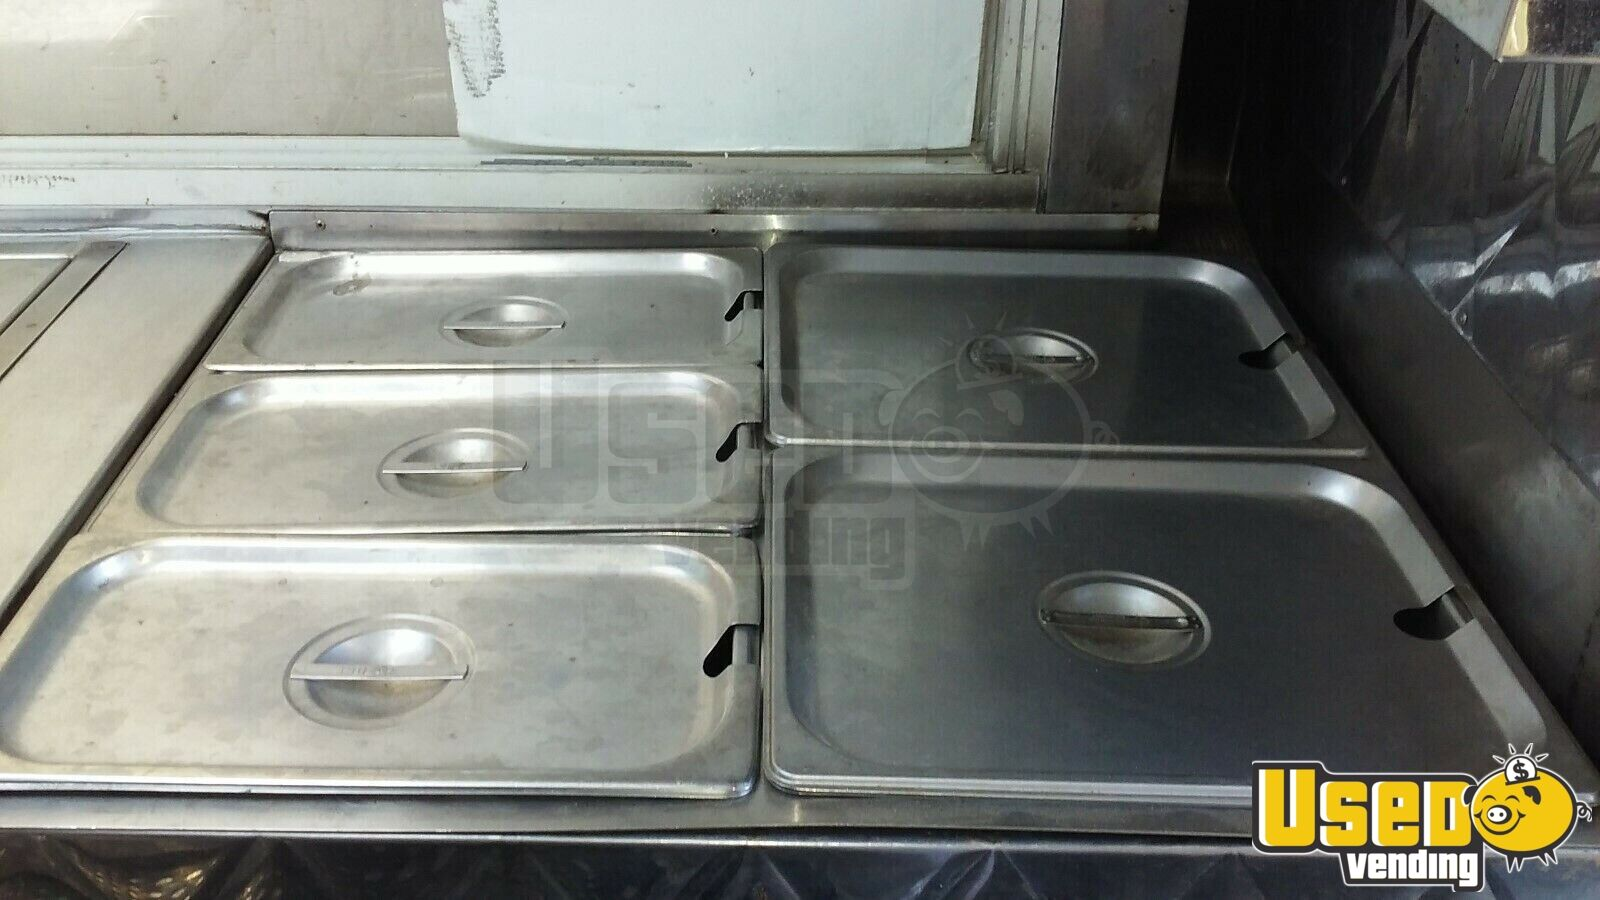 1981 Chevrolet 350 All-purpose Food Truck Prep Station Cooler New Jersey for Sale - 9